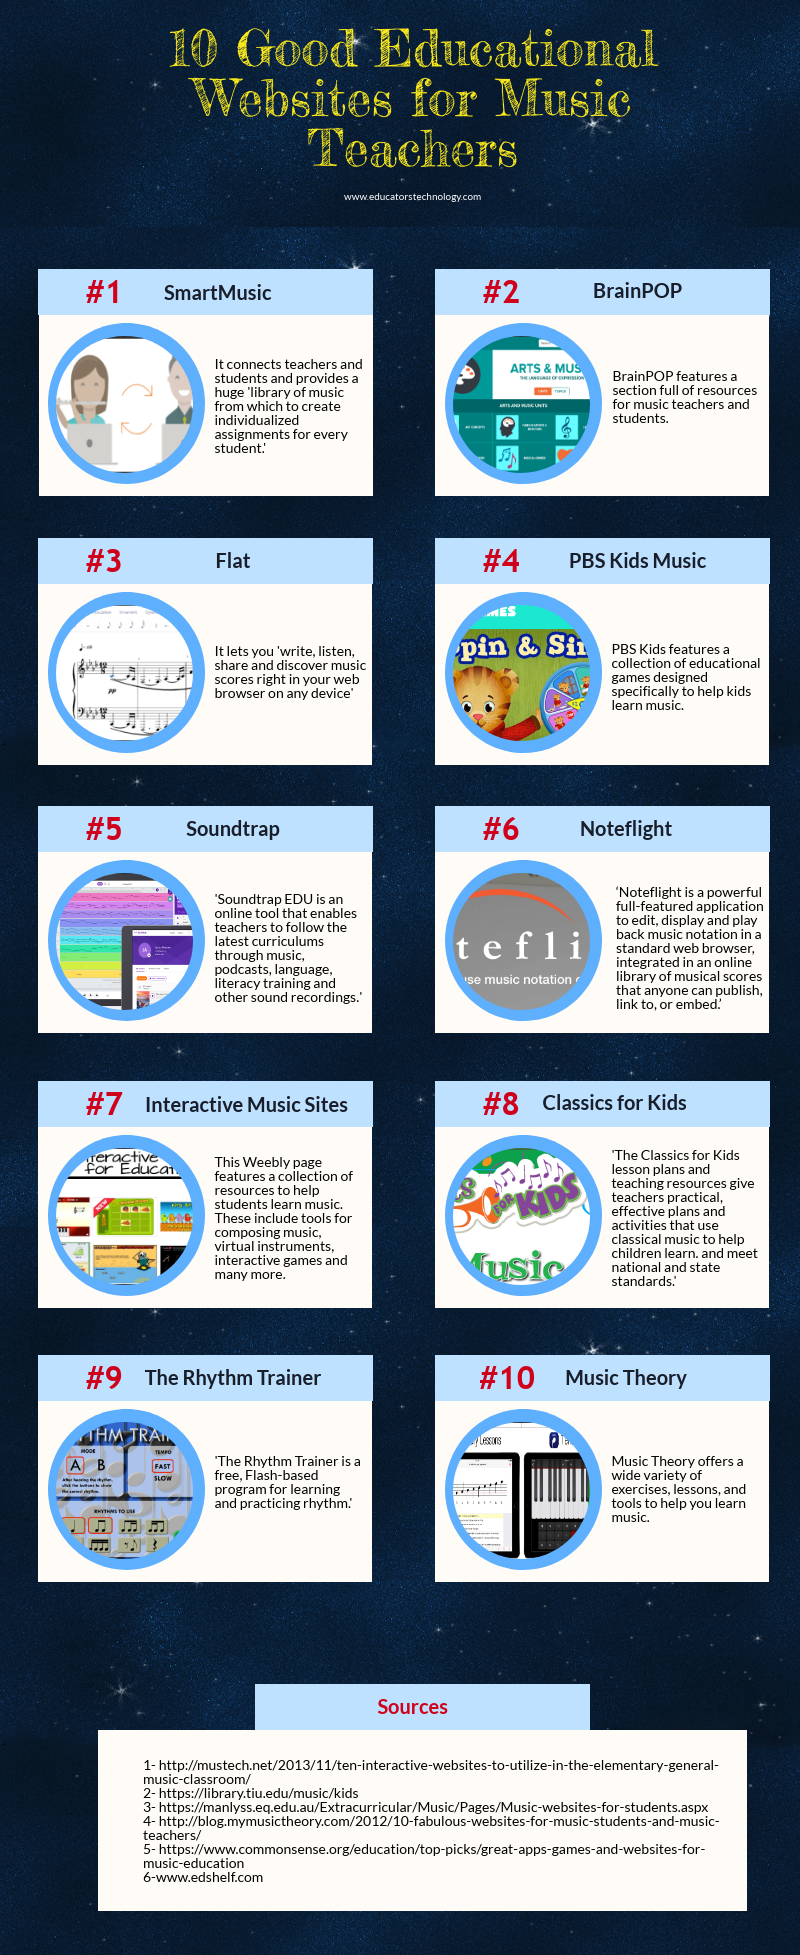 10 Good Educational Websites for Music Teachers